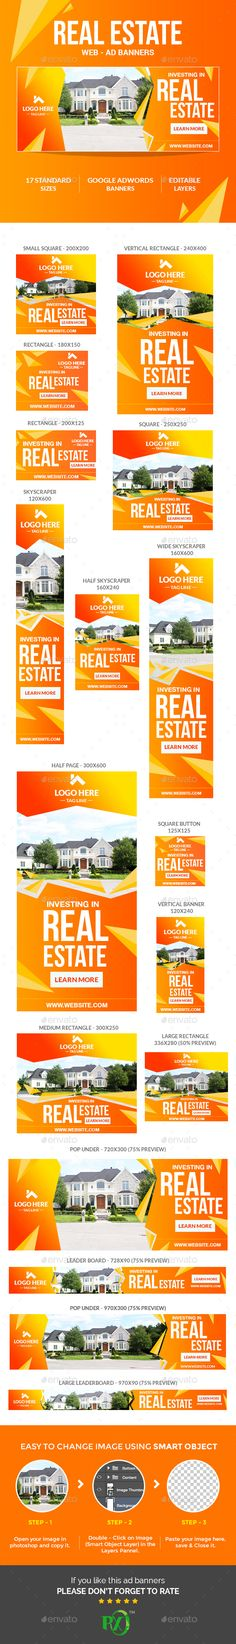 Real Estate Ad Web Banners Template PSD #ads #design Download: http://graphicriver.net/item/real-estate-ad-banners/13298095?ref=ksioks